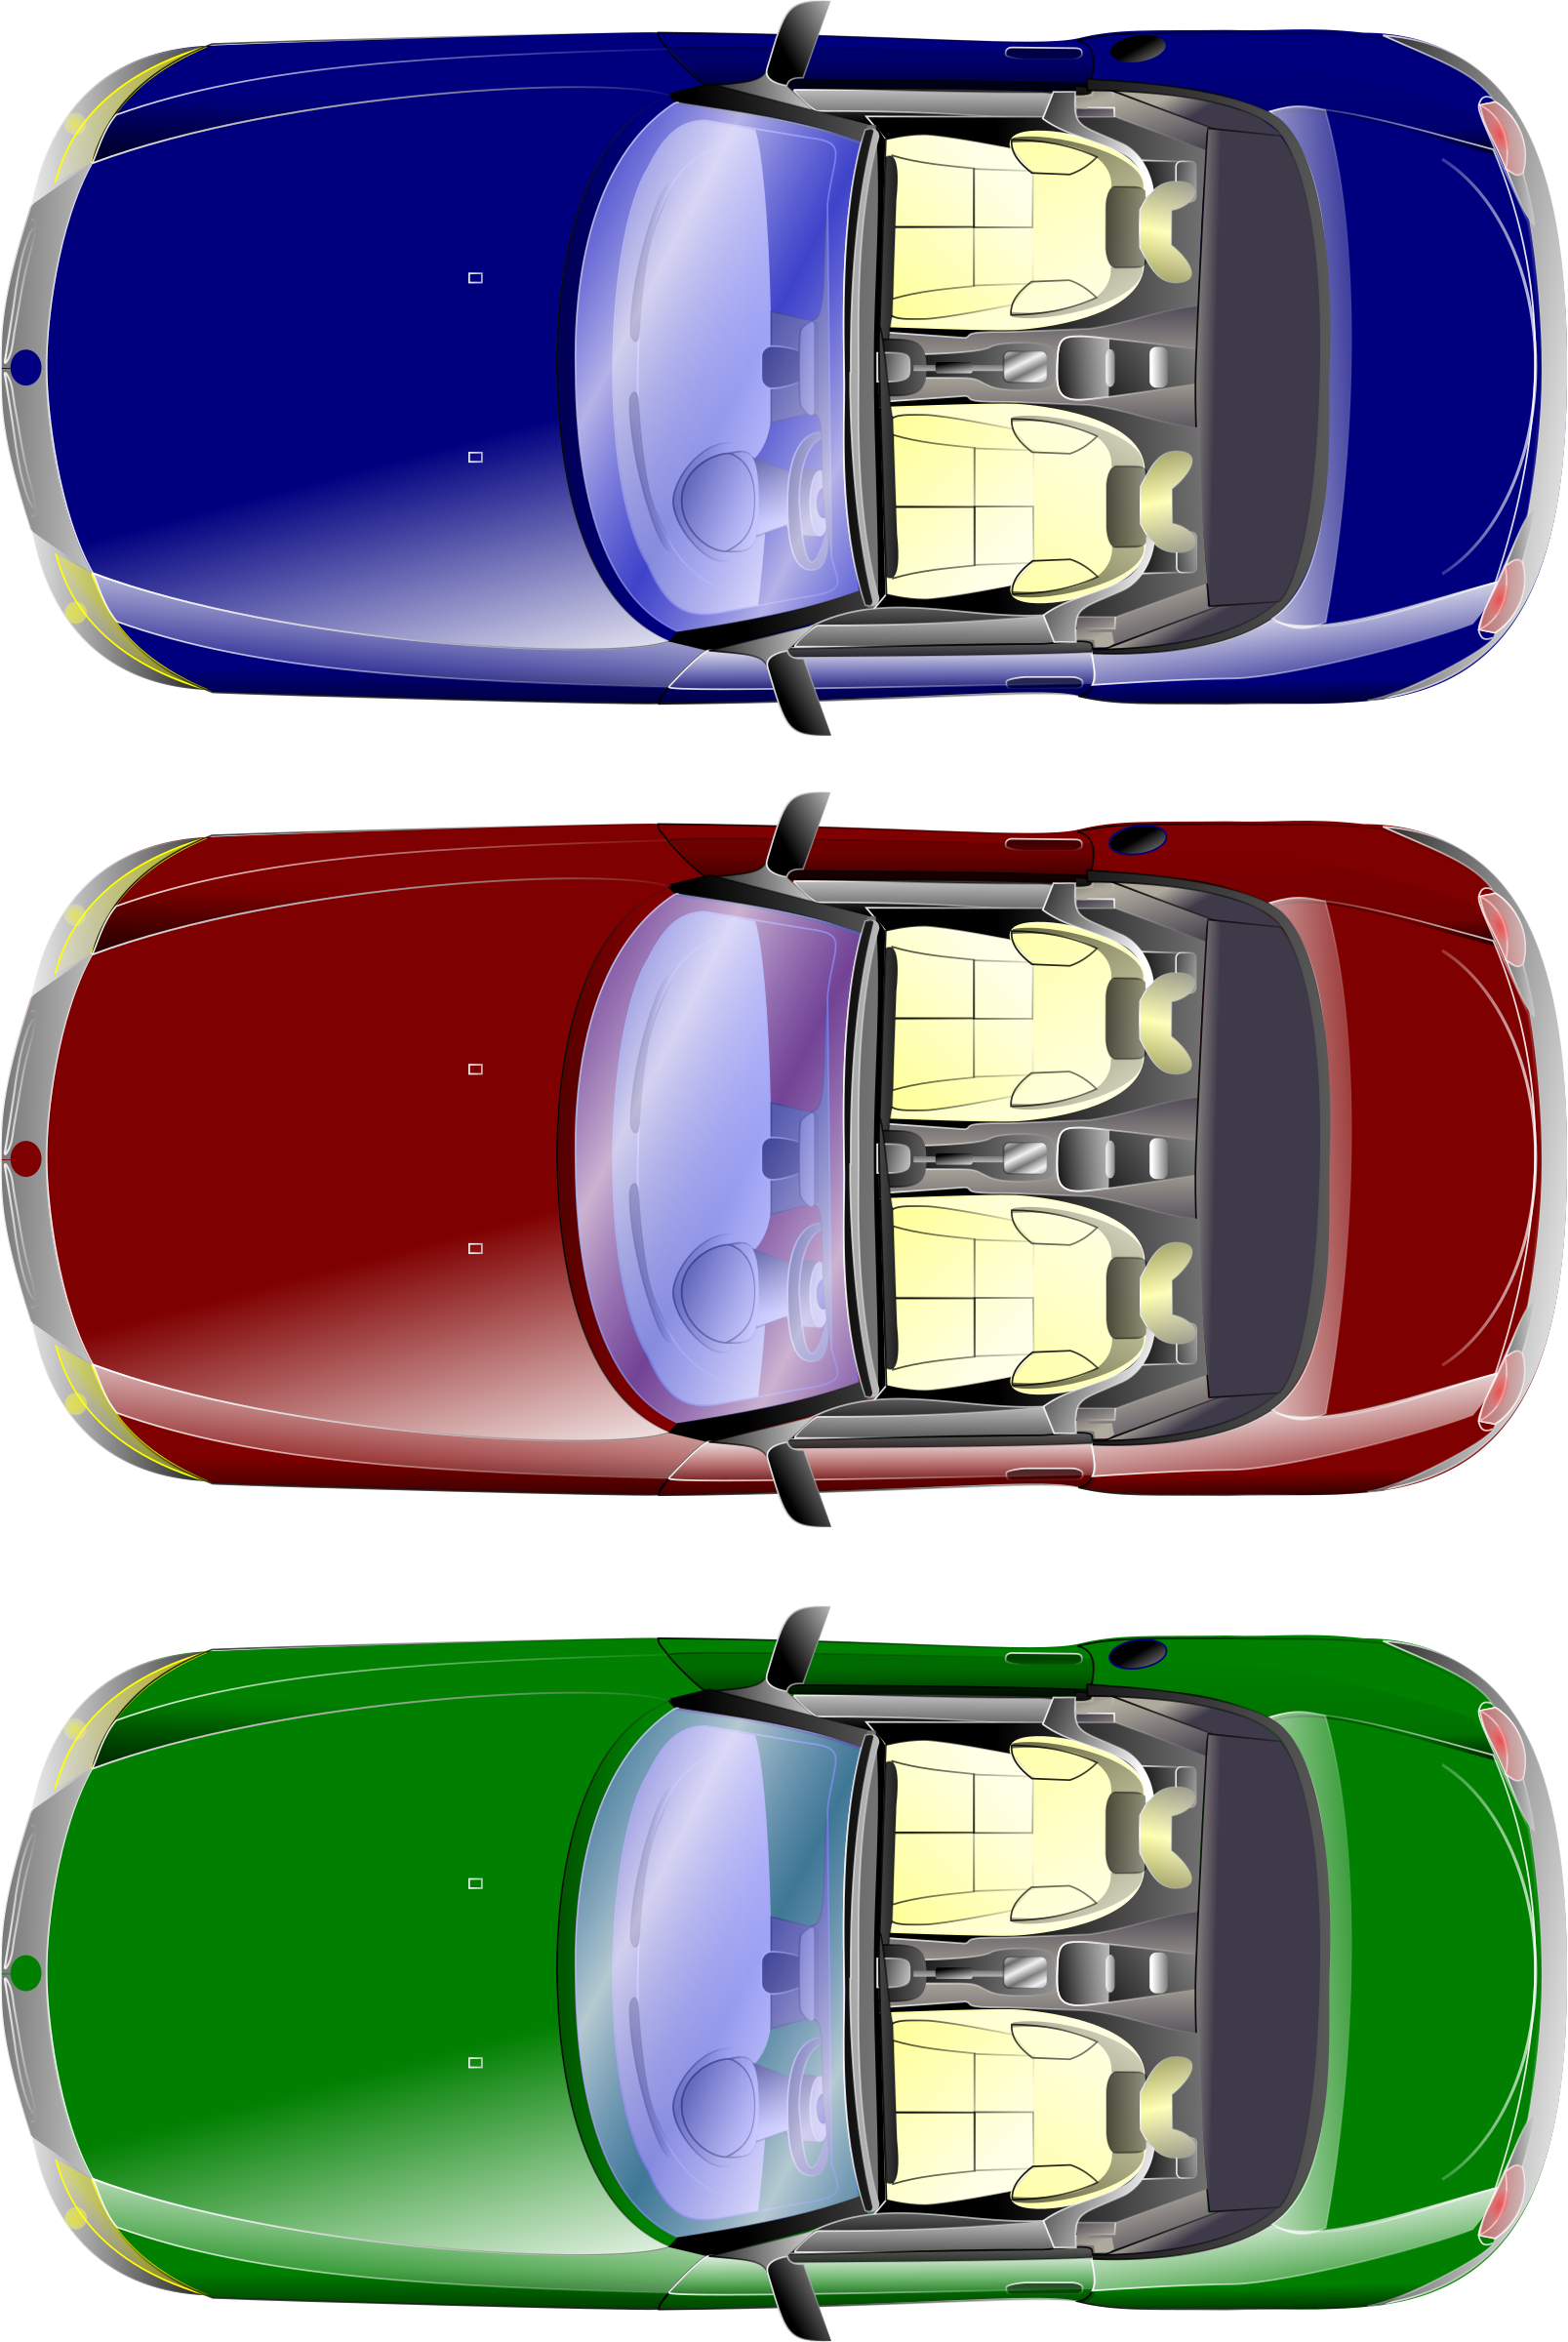 Best cars clipart clip art freeuse download car top view by obi   clipart   Car top view, Top cars, Top view clip art freeuse download